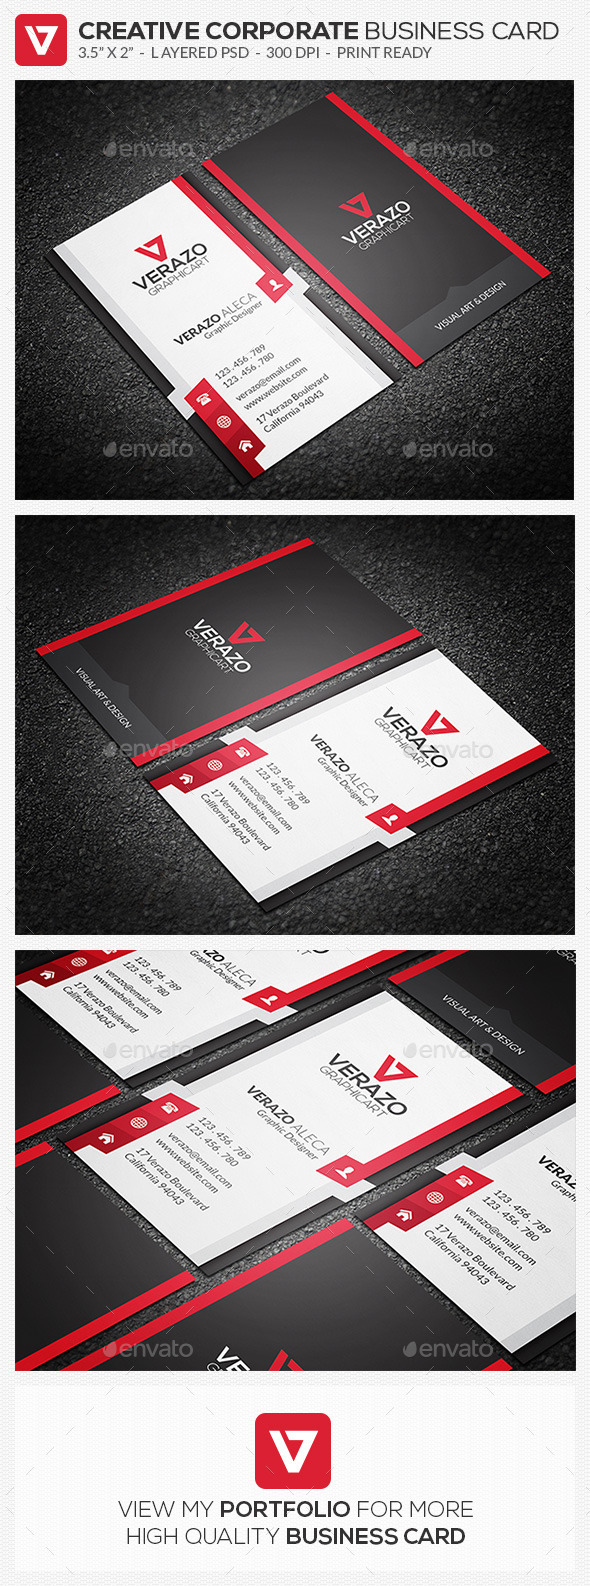 GraphicRiver Creative Corporate Business Card 73 10376708